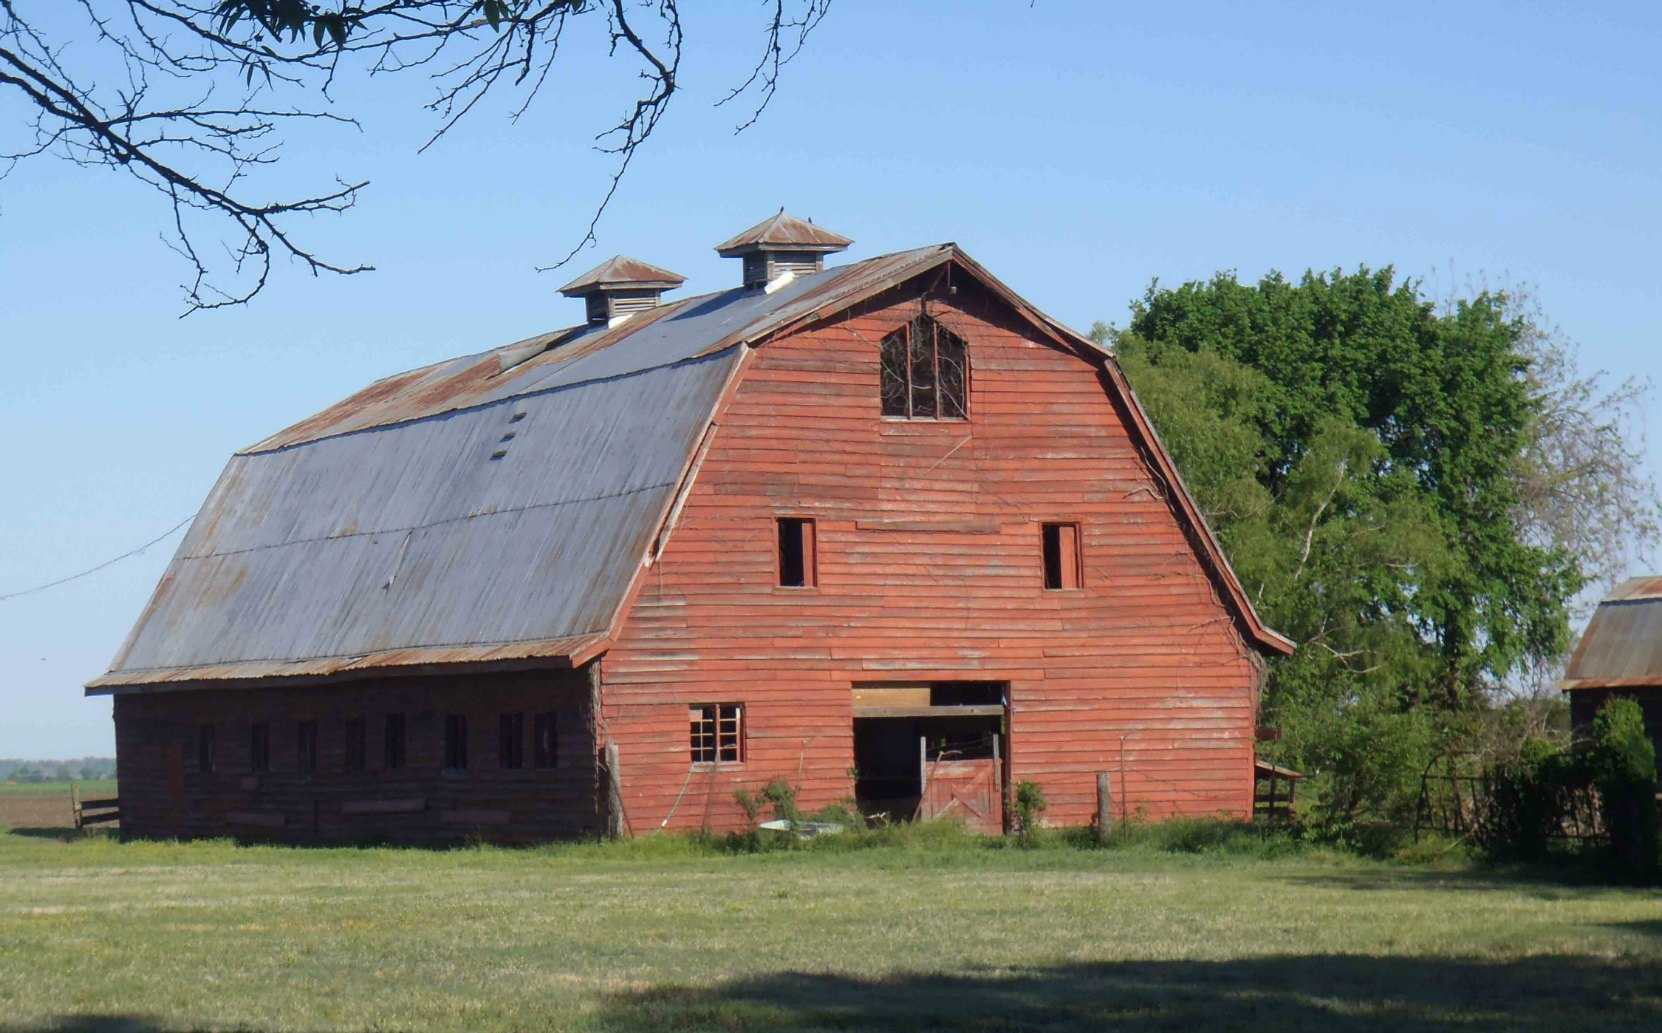 Stovall Farms barn near the farm entrance, near the Muddy Waters House site.